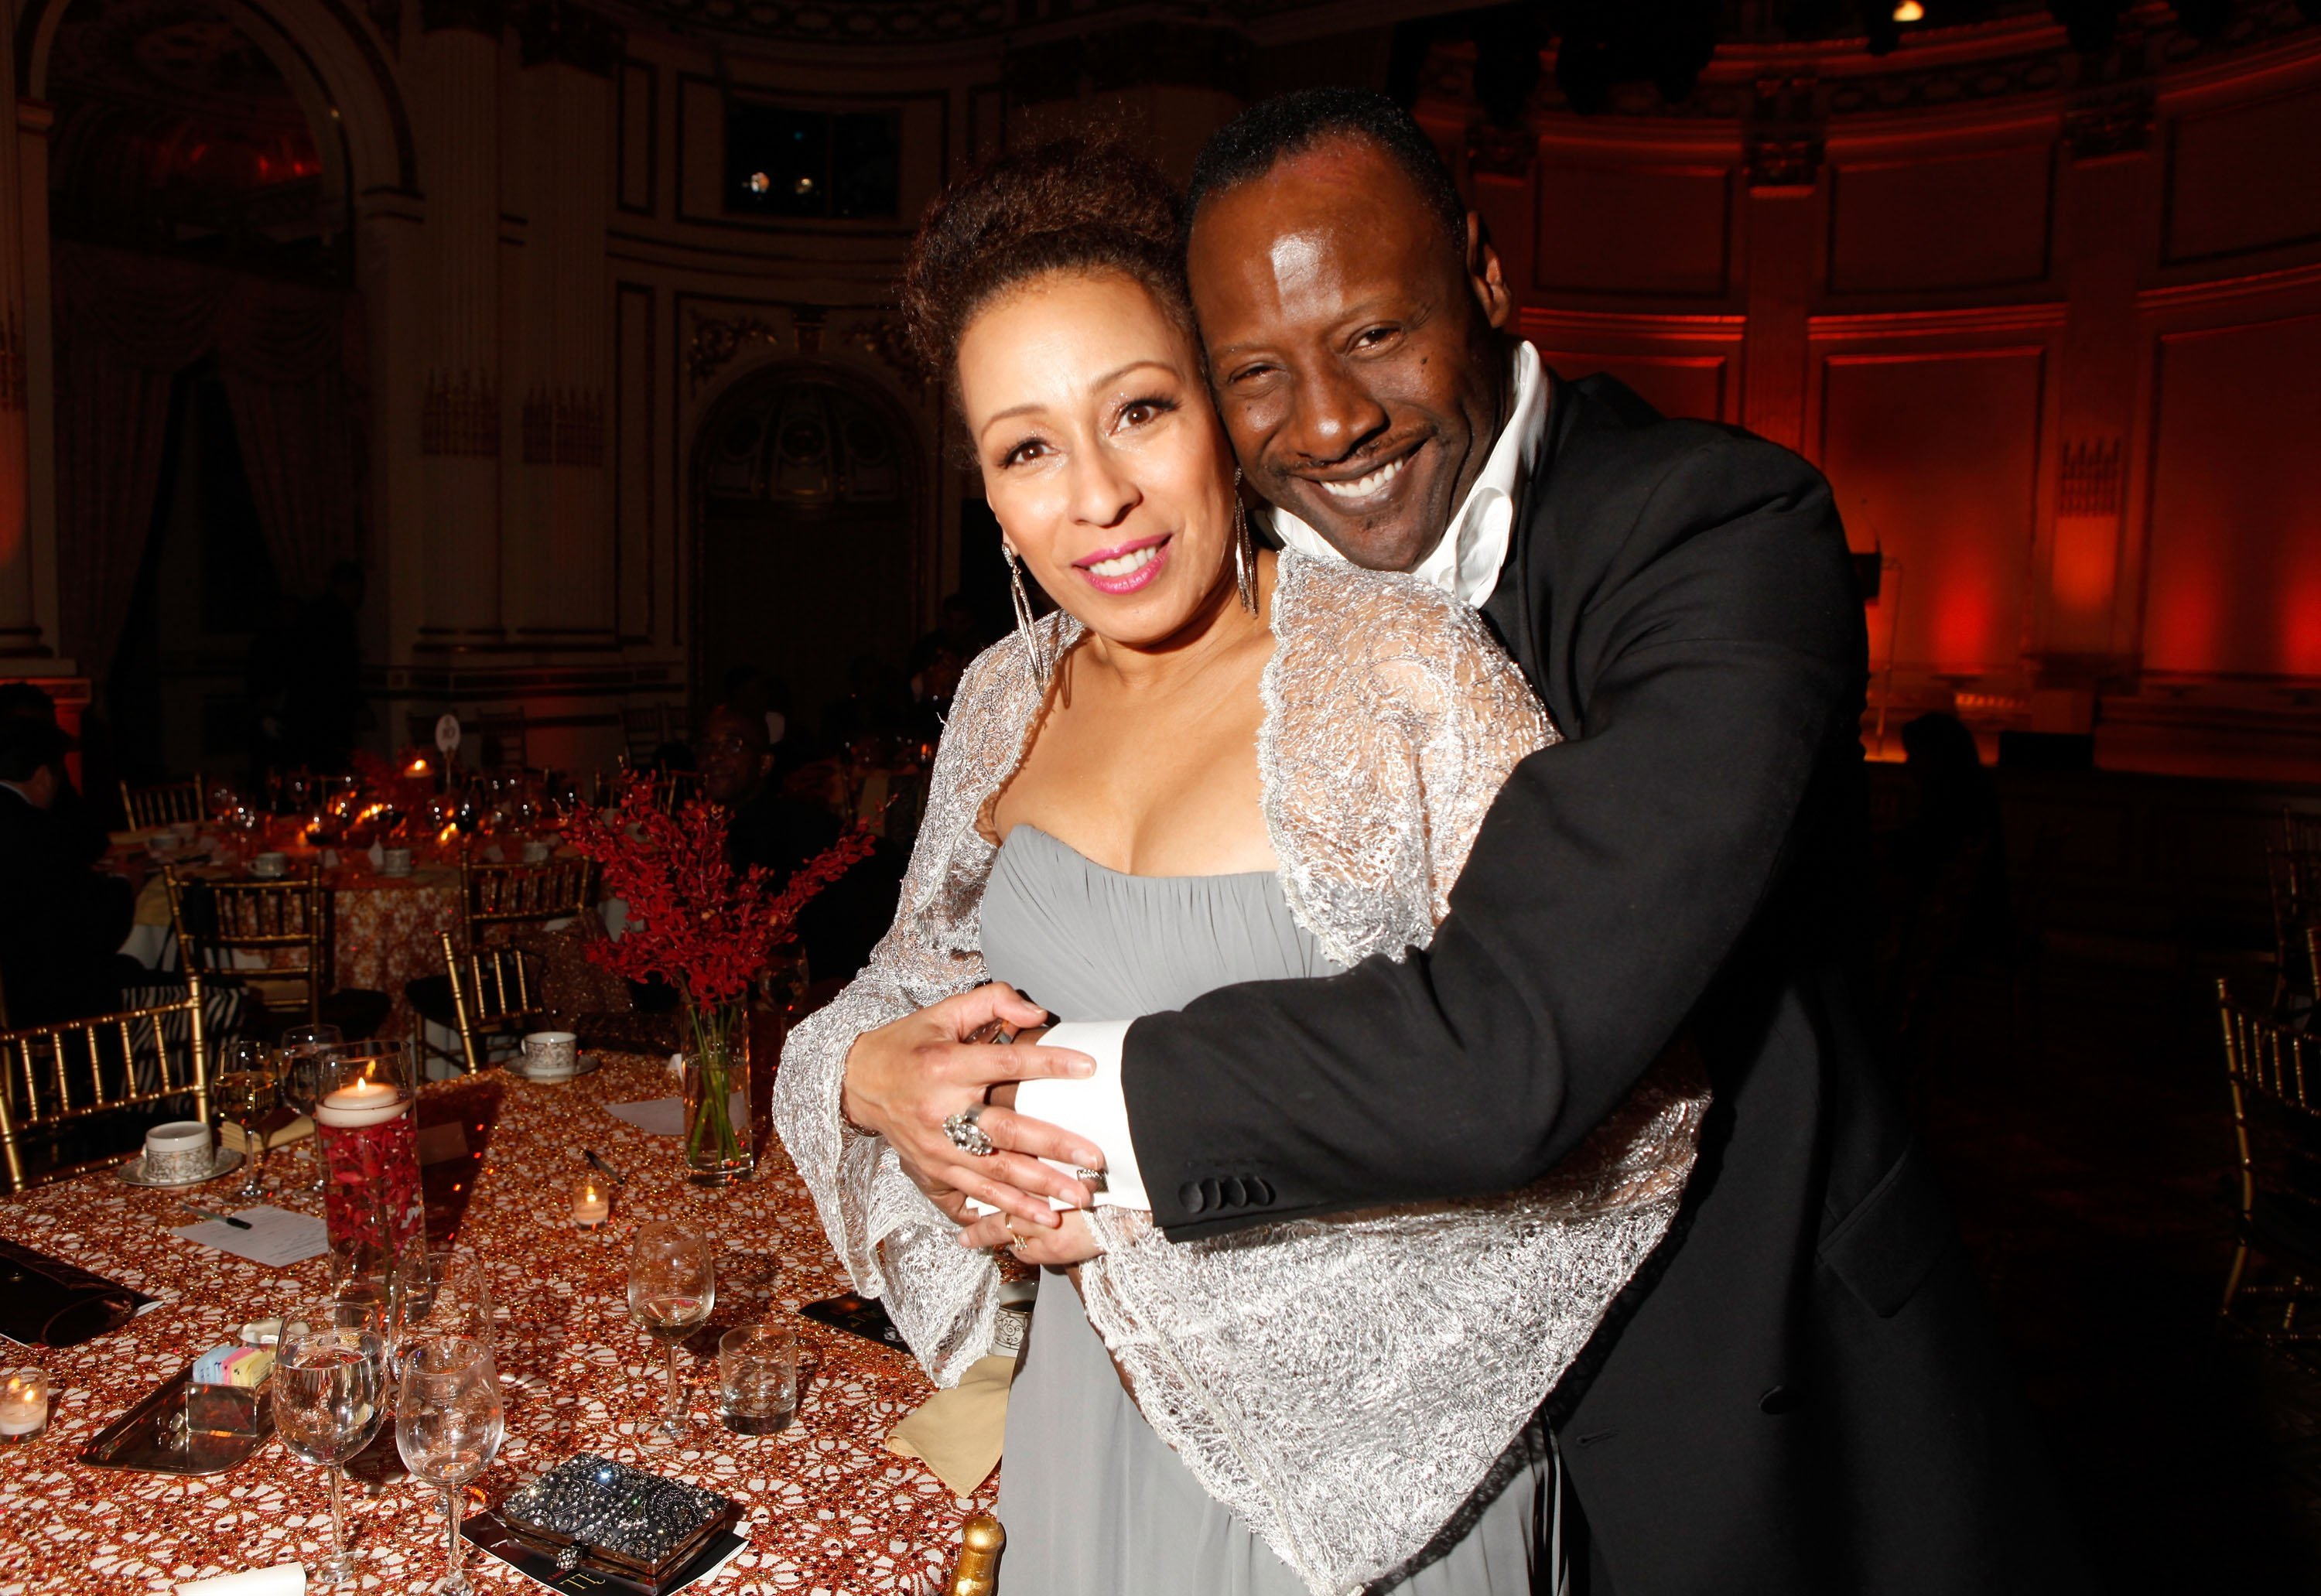 Tamara Tunie and Gregory Generet at the Torch Ball hosted by Evidence, A Dance Company. | Source: Getty Images